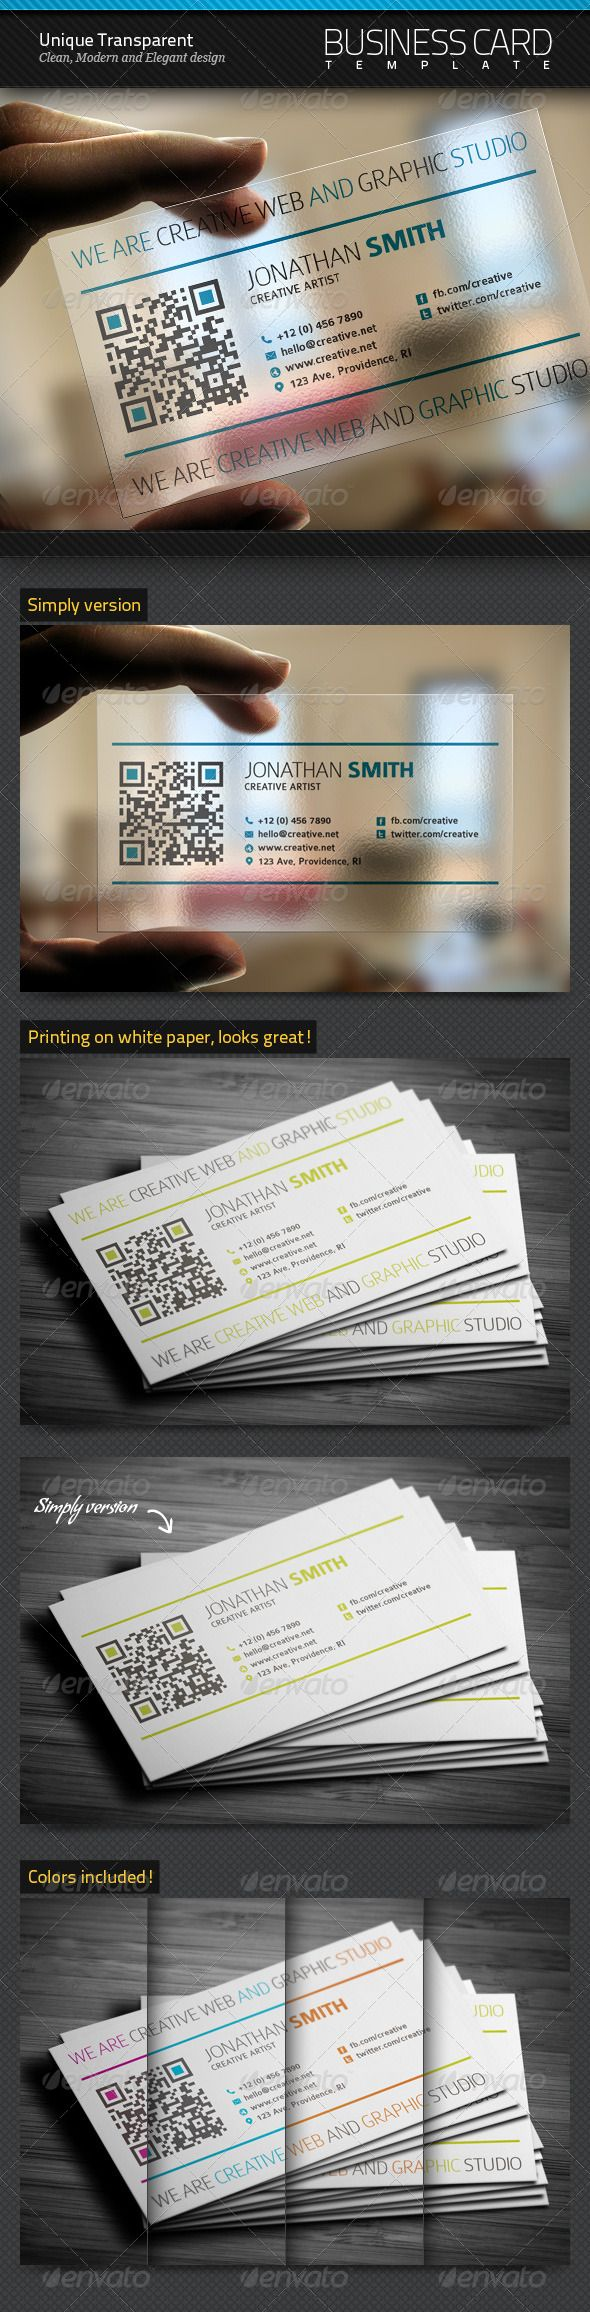 Best 25 transparent business cards ideas on pinterest clear unique transparent business card magicingreecefo Choice Image